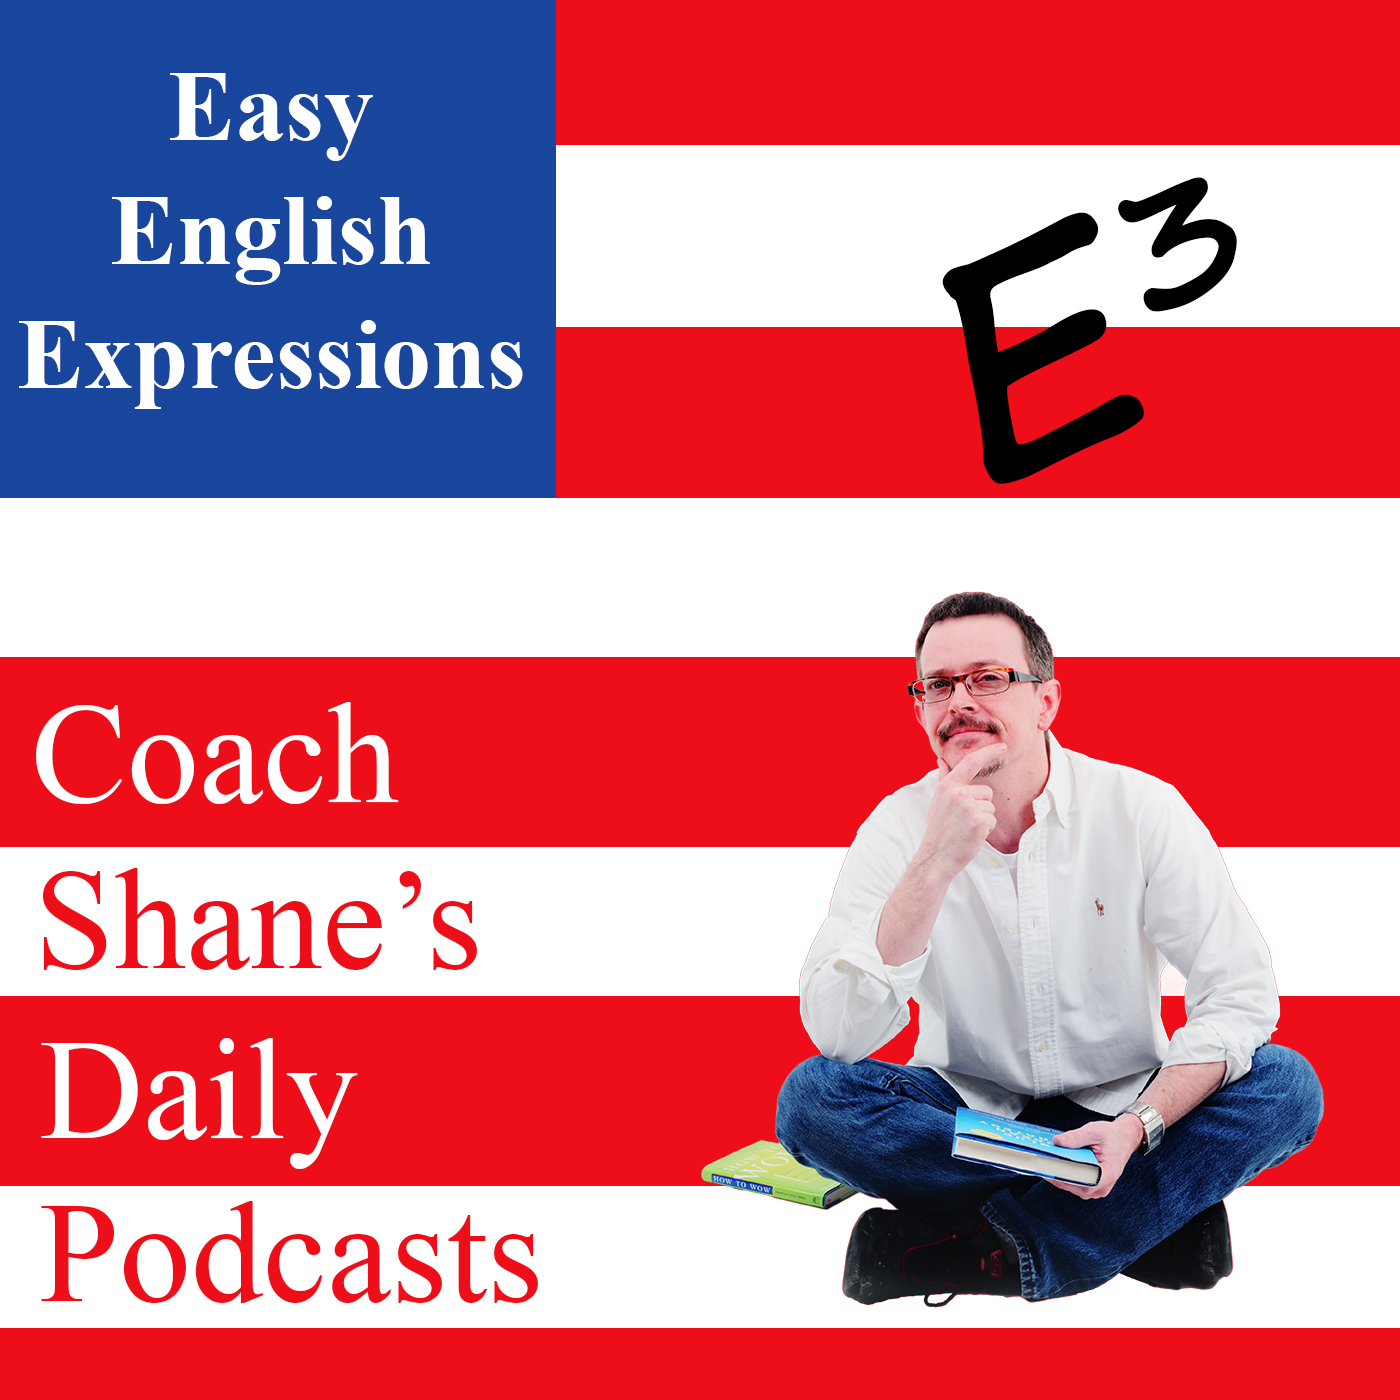 63 Daily Easy English Expression PODCAST— Nuke it!